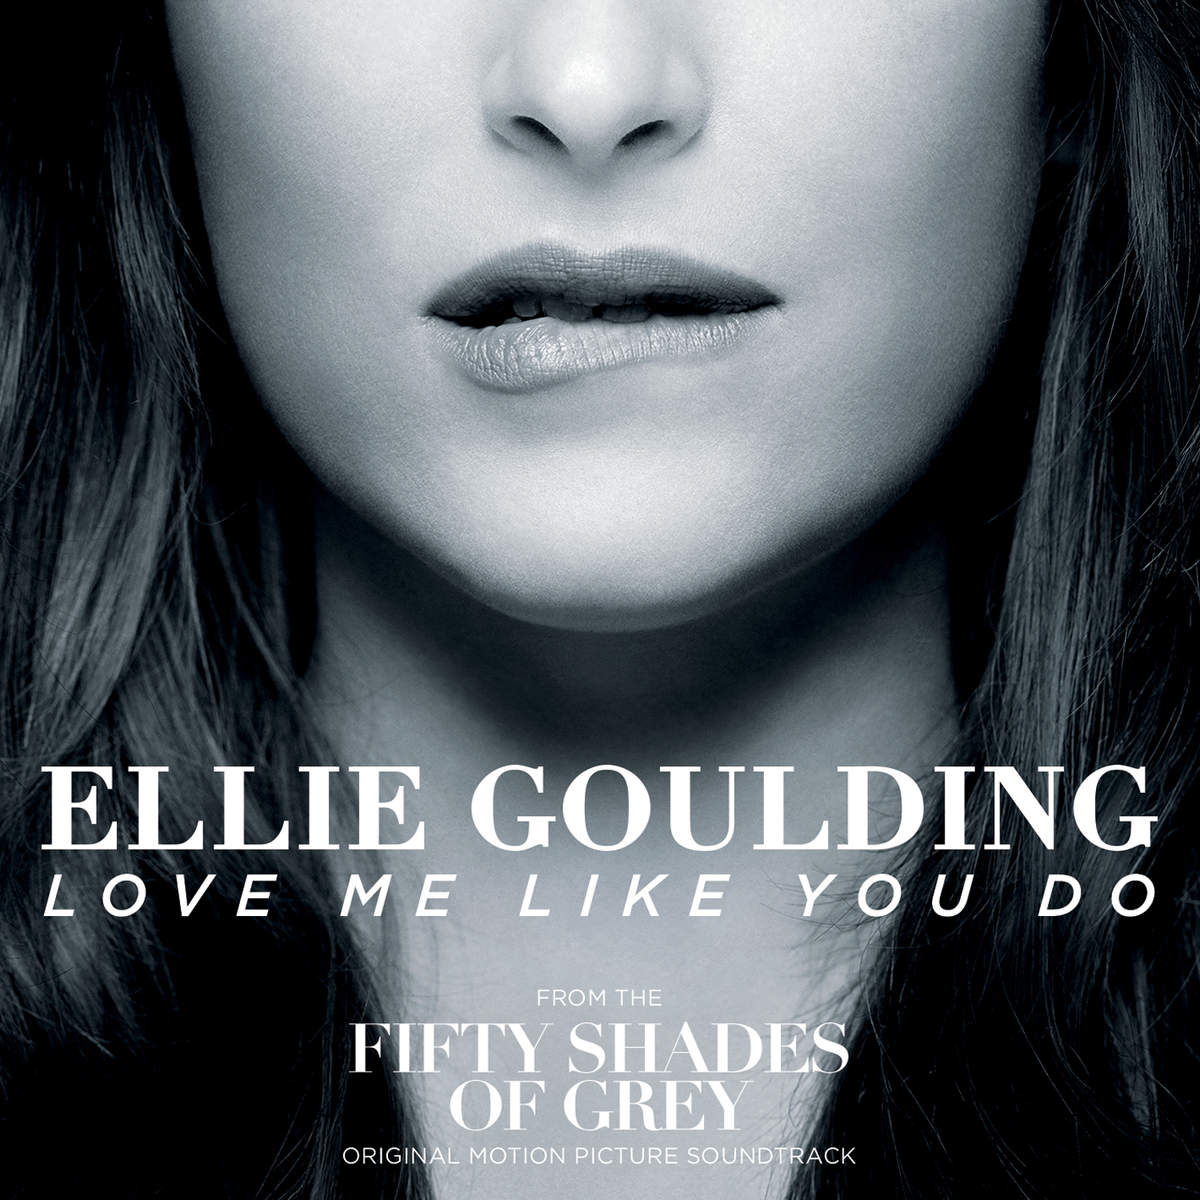 LOVE ME LIKE YOU DO - Guitar Chords - ELLIE GOULDING